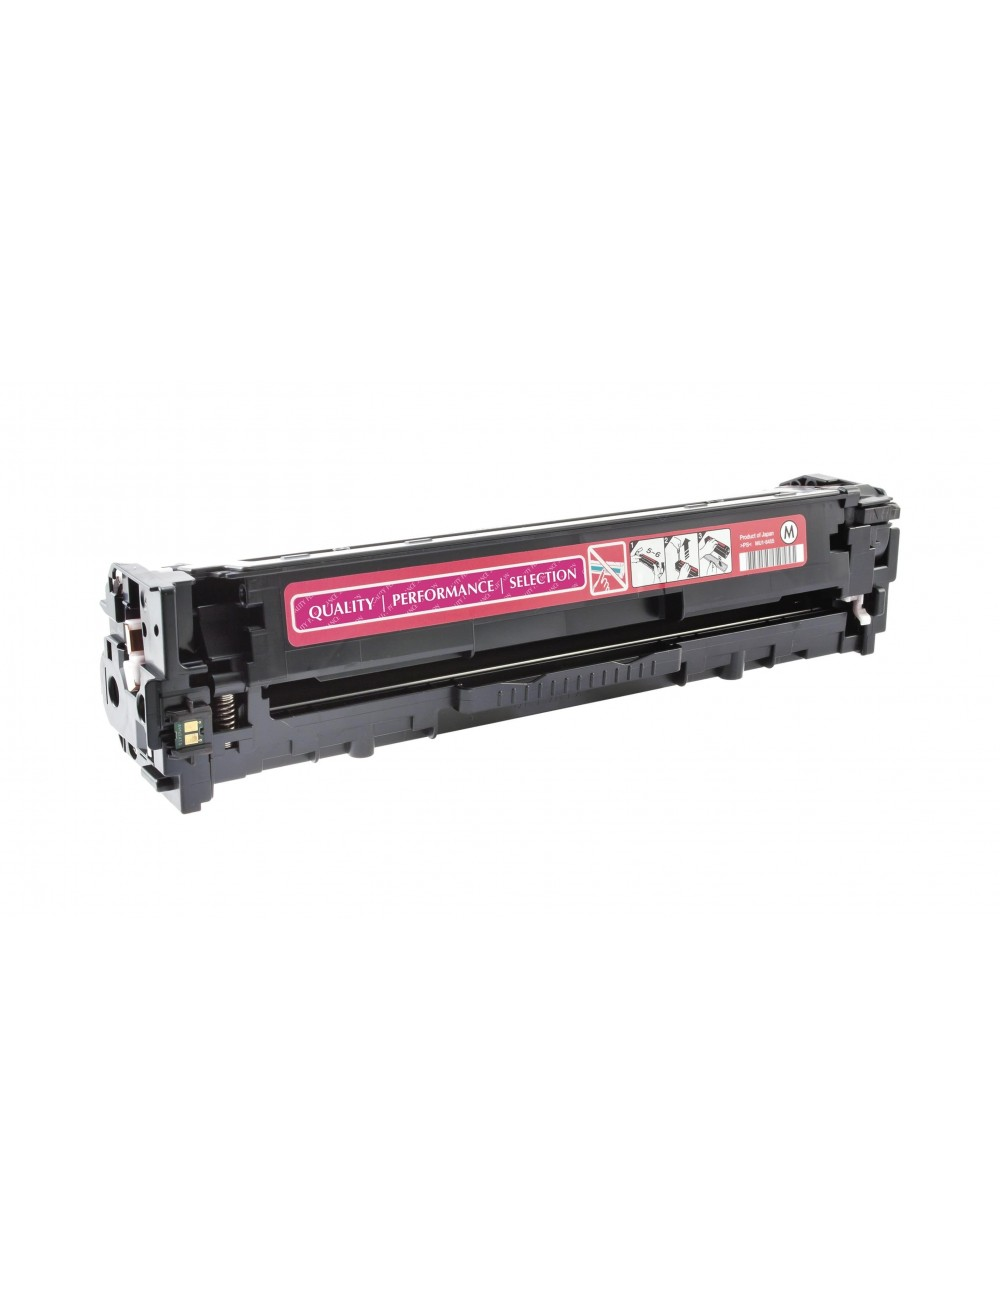 Συμβατό Τόνερ HP Color CM1415/MFP/CP1525 Magenta CE323A